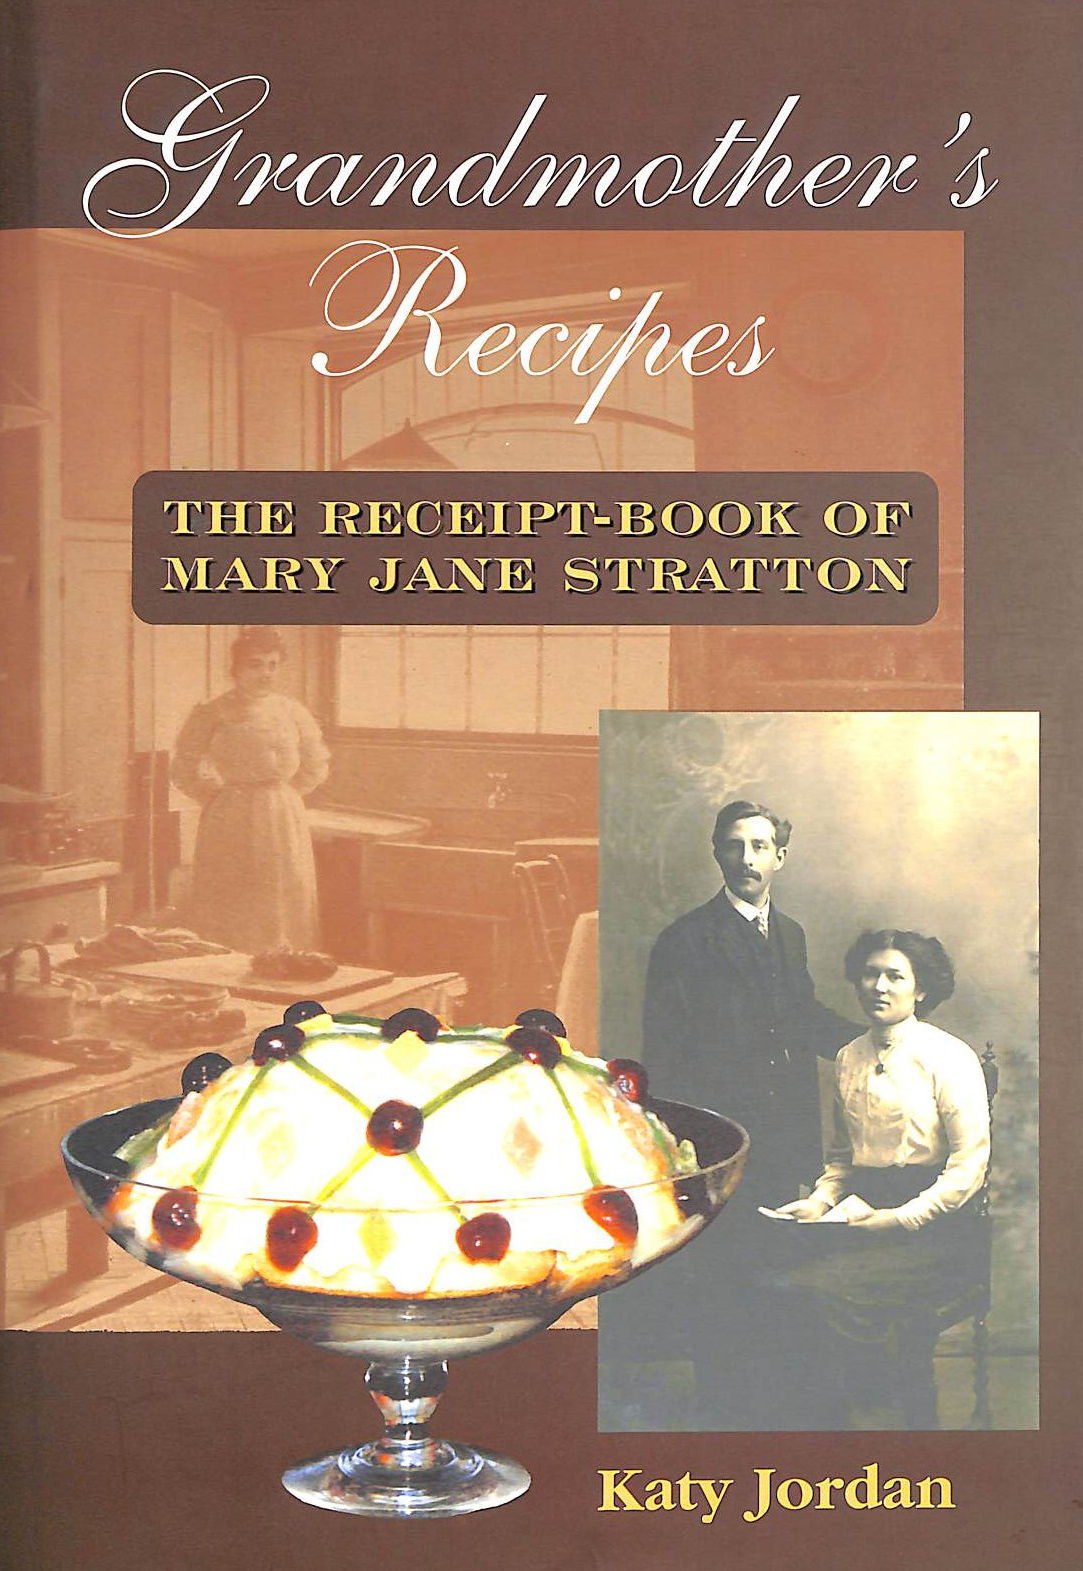 Image for Grandmother's Recipes: The Receipt-Book Of Mary Jane Stratton